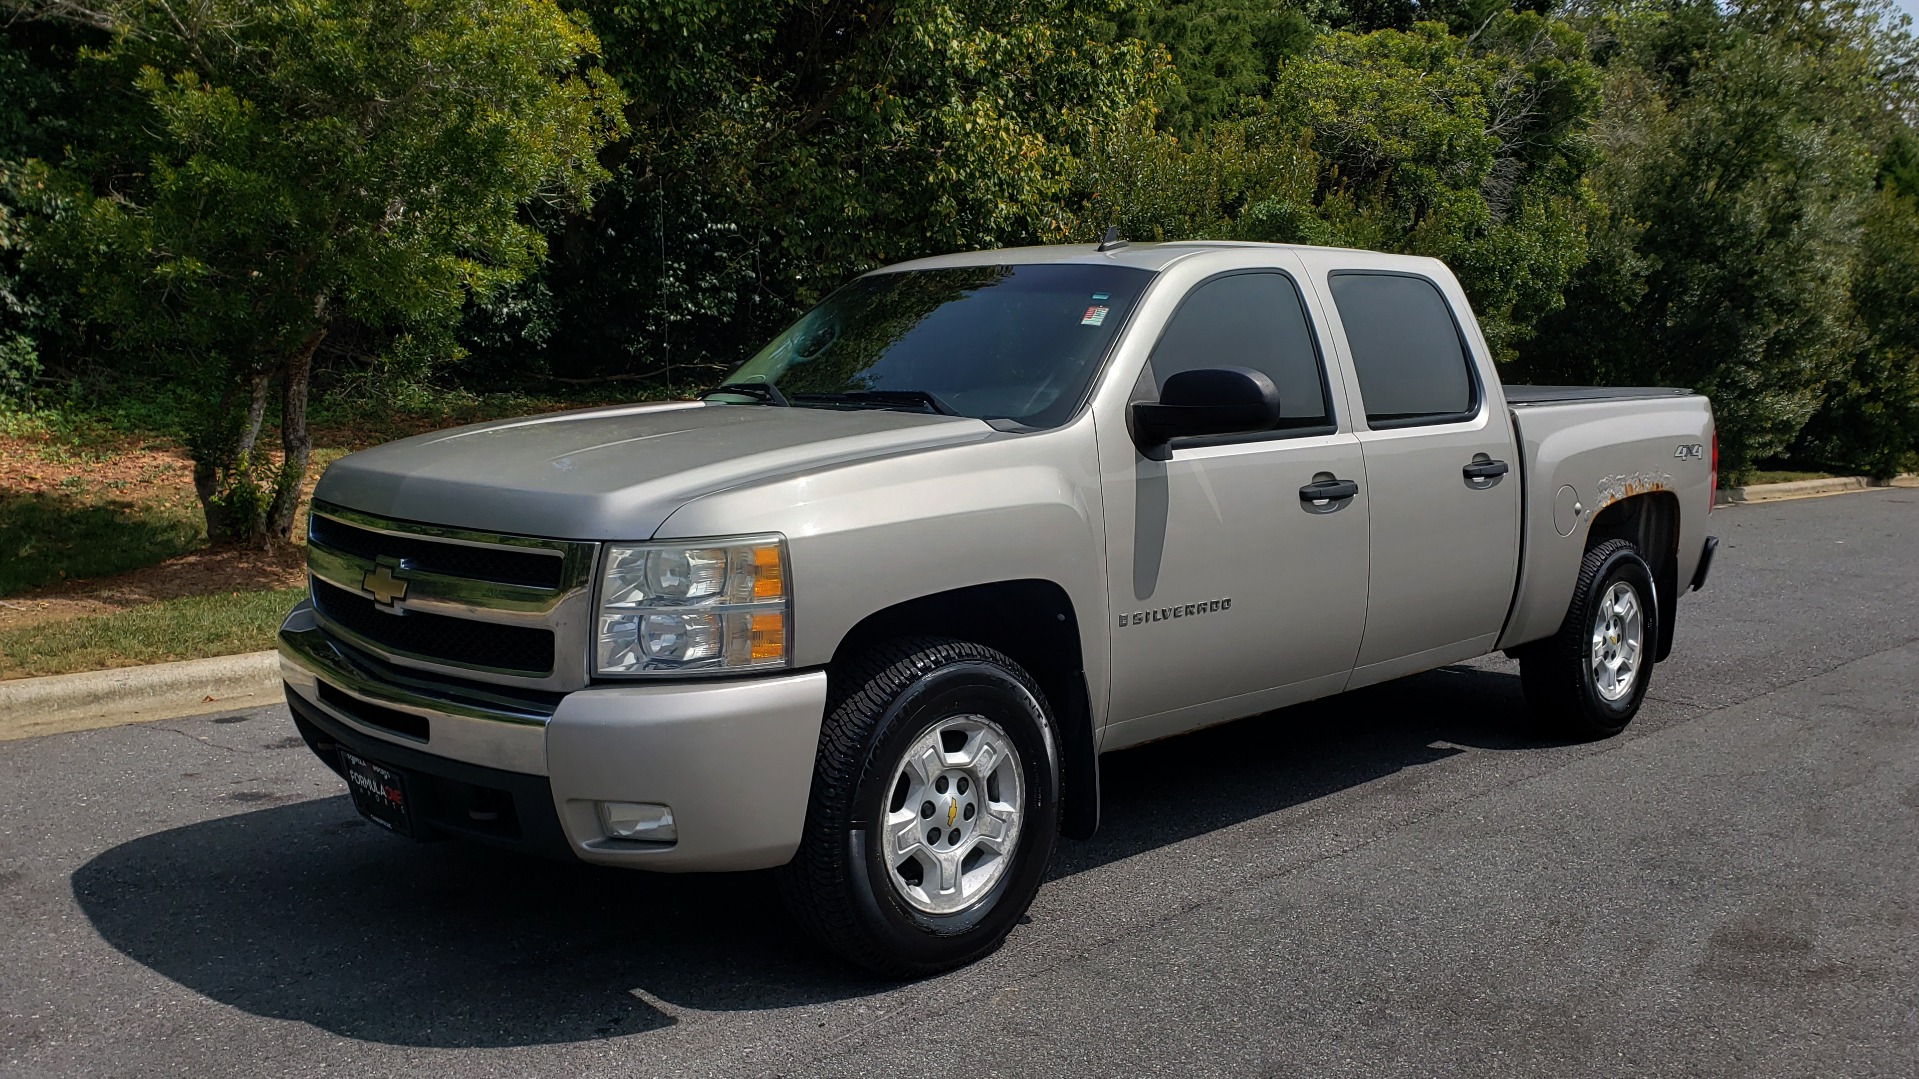 Used 2009 Chevrolet SILVERADO 1500 LT / CREWCAB / 5.3L V8 / 4WD / TRAILER PKG / REARVIEW for sale $10,595 at Formula Imports in Charlotte NC 28227 1